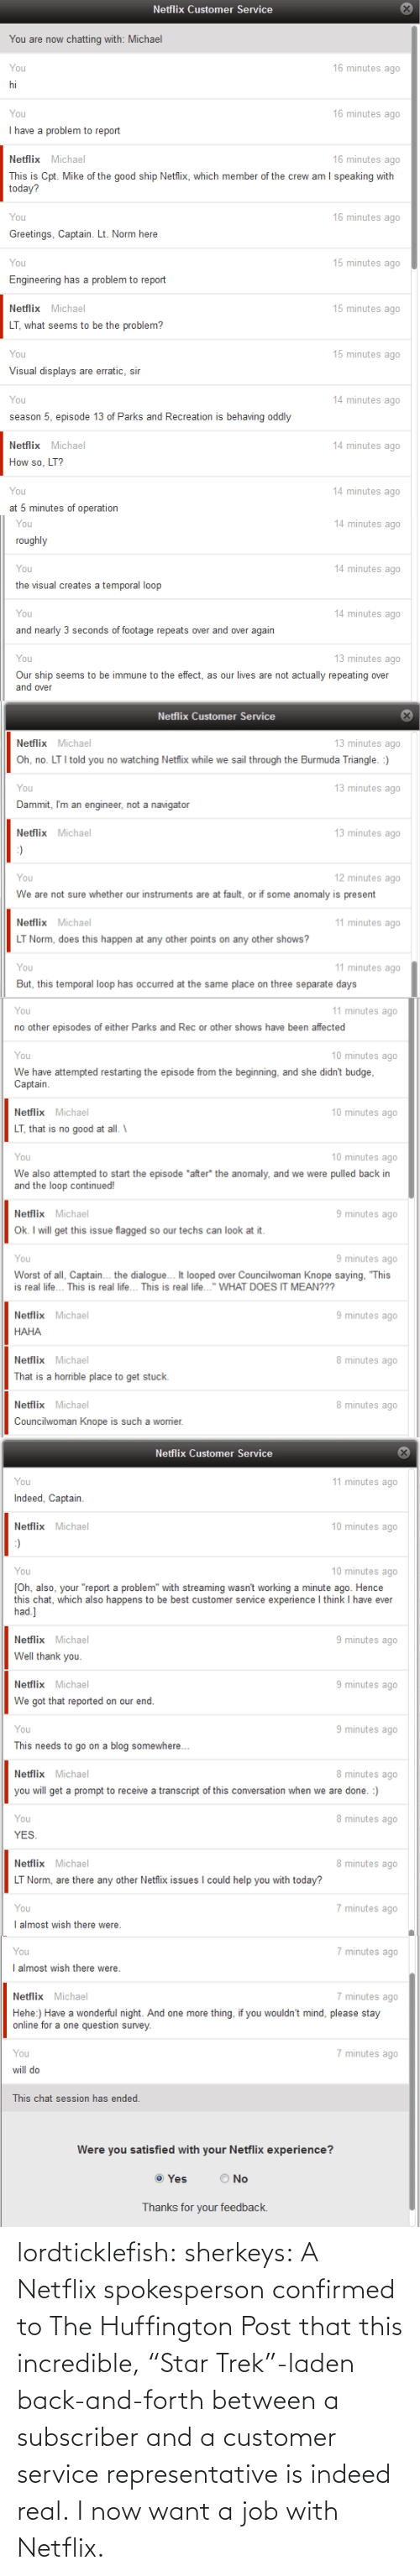 episode 13: Netflix Customer Service  You are now chatting with: Michael  16 minutes ago  You  hi  You  16 minutes ago  I have a problem to report  16 minutes ago  Netflix Michael  This is Cpt. Mike of the good ship Netflix, which member of the crew am I speaking with  today?  16 minutes ago  You  Greetings, Captain. Lt. Norm here  15 minutes ago  You  Engineering has a problem to report  15 minutes ago  Netflix Michael  LT, what seems to be the problem?  15 minutes ago  You  Visual displays are erratic, sir  14 minutes ago  You  season 5, episode 13 of Parks and Recreation is behaving oddly  14 minutes ago  Netflix Michael  How so, LT?  14 minutes ago  You  at 5 minutes of operation   14 minutes ago  You  roughly  14 minutes ago  You  the visual creates a temporal loop  14 minutes ago  You  and nearly 3 seconds of footage repeats over and over again  13 minutes ago  You  Our ship seems to be immune to the effect, as our lives are not actually repeating over  and over  Netflix Customer Service  13 minutes ago  Netflix Michael  Oh, no. LT I told you no watching Netfix while we sail through the Burmuda Triangle. :)  13 minutes ago  You  Dammit, I'm an engineer, not a navigator  13 minutes ago  Netflix Michael  :)  12 minutes ago  You  We are not sure whether our instruments are at fault, or if some anomaly is present  11 minutes ago  Netflix Michael  LT Norm, does this happen at any other points on any other shows?  11 minutes ago  You  But, this temporal loop has occurred at the same place on three separate days   11 minutes ago  You  no other episodes of either Parks and Rec or other shows have been affected  10 minutes ago  You  We have attempted restarting the episode from the beginning, and she didn't budge,  Captain.  10 minutes ago  Netflix Michael  LT, that is no good at all. \  10 minutes ago  You  We also attempted to start the episode *after* the anomaly, and we were pulled back in  and the loop continued!  Netflix Michael  9 minutes ago  Ok. I will get thi